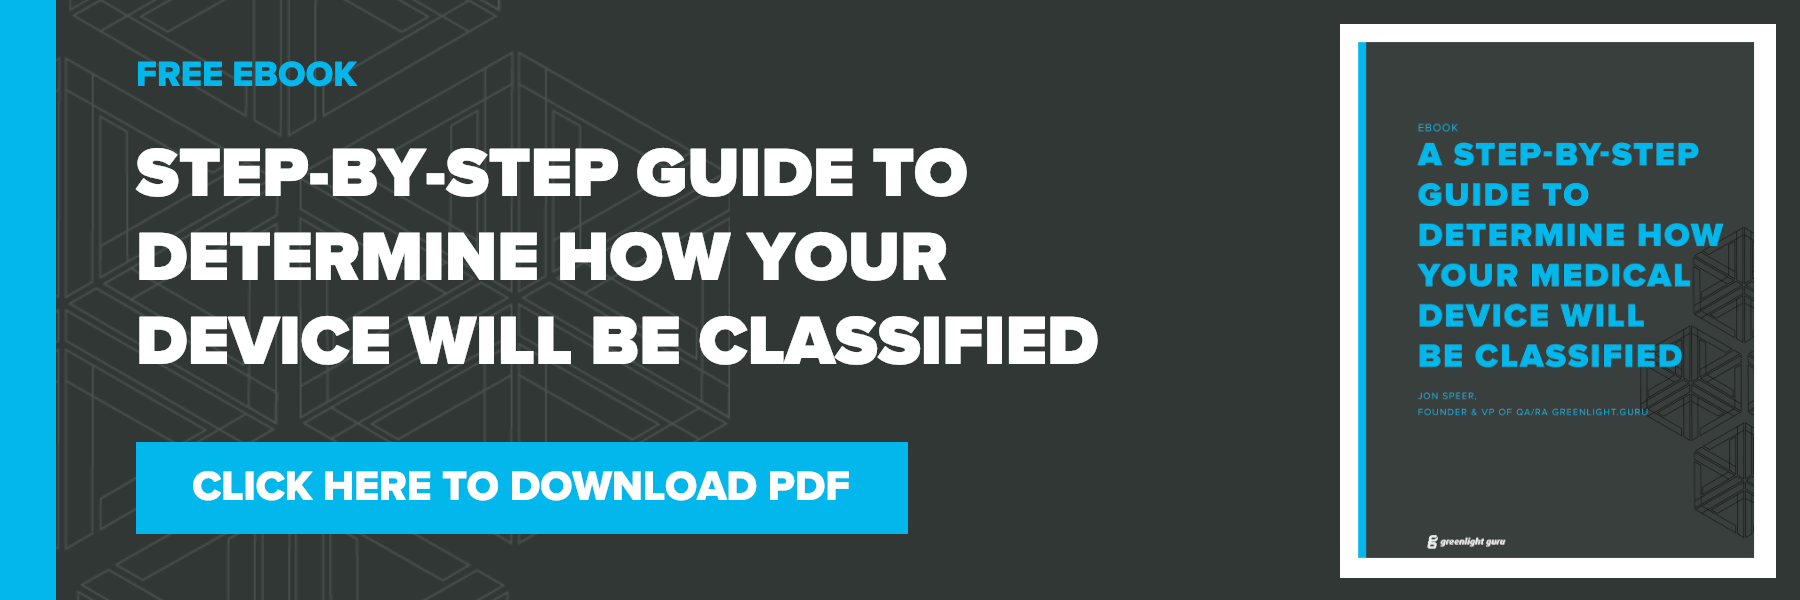 medical device classification overview PDF download